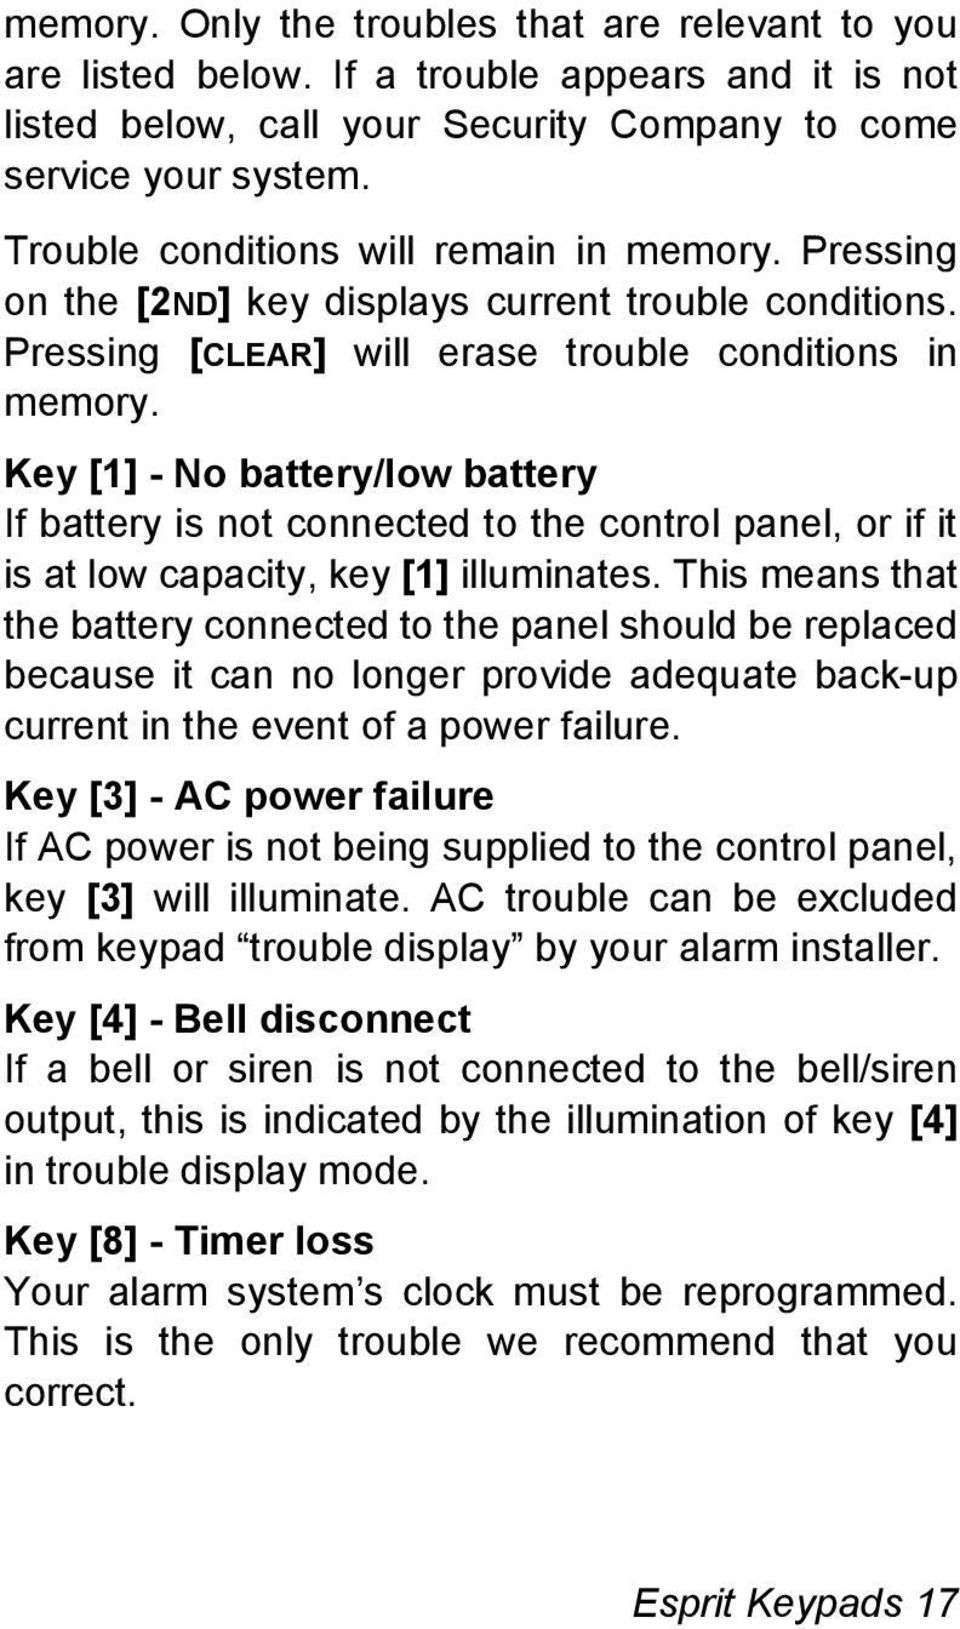 Key [1] - No battery/low battery If battery is not connected to the control panel, or if it is at low capacity, key [1] illuminates.